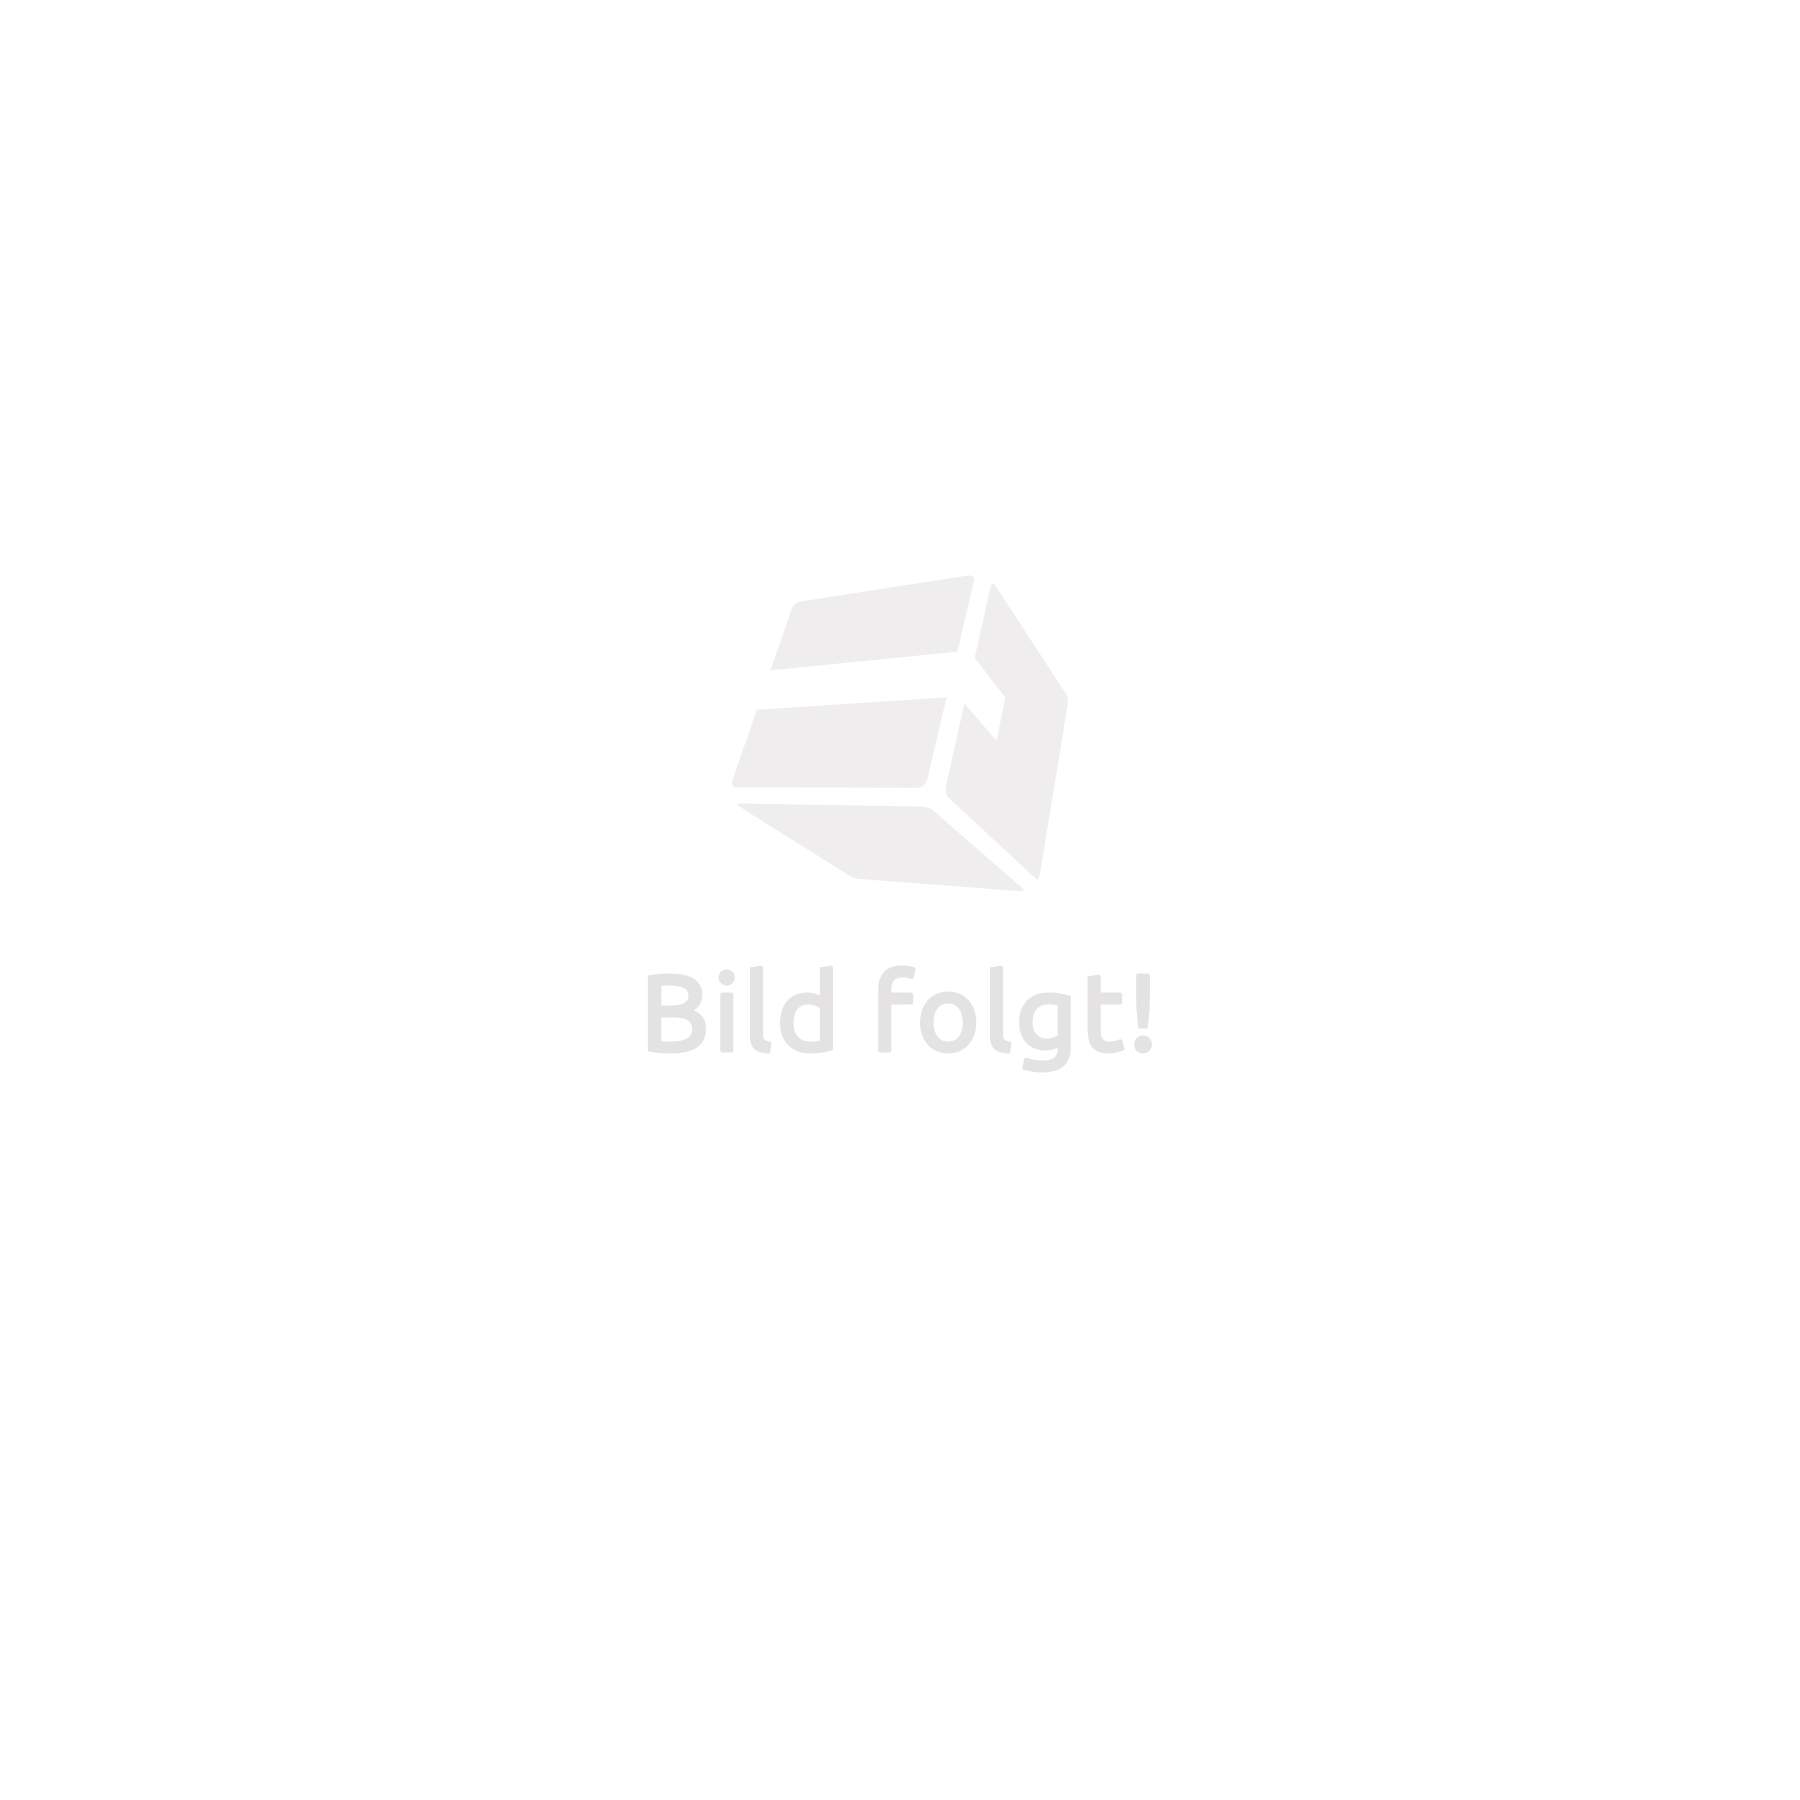 Table de bar, Table de Jardin, Aluminium - Hauteur réglable 5,8 cm Non-pliable